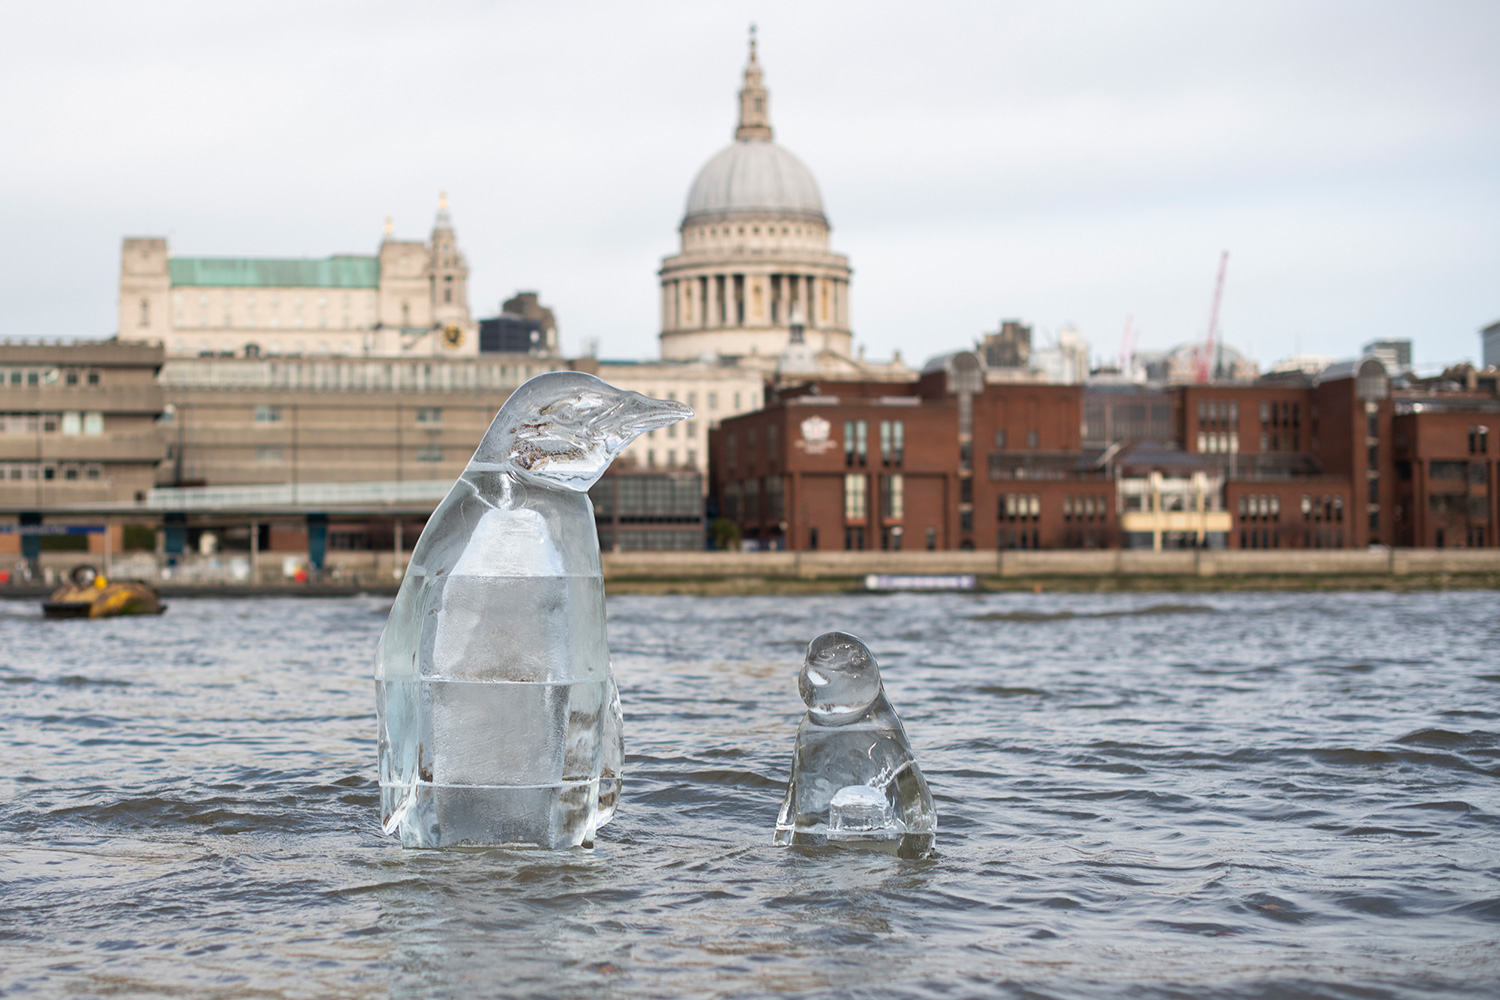 Greenpeace activists installed a two-metre high penguin ice sculpture on the shore of the River Thames opposite St. Paul's Cathedral. It is part of a campaign to highlight the threats to marine life as part of a global call by Greenpeace for greater action on ocean protection.